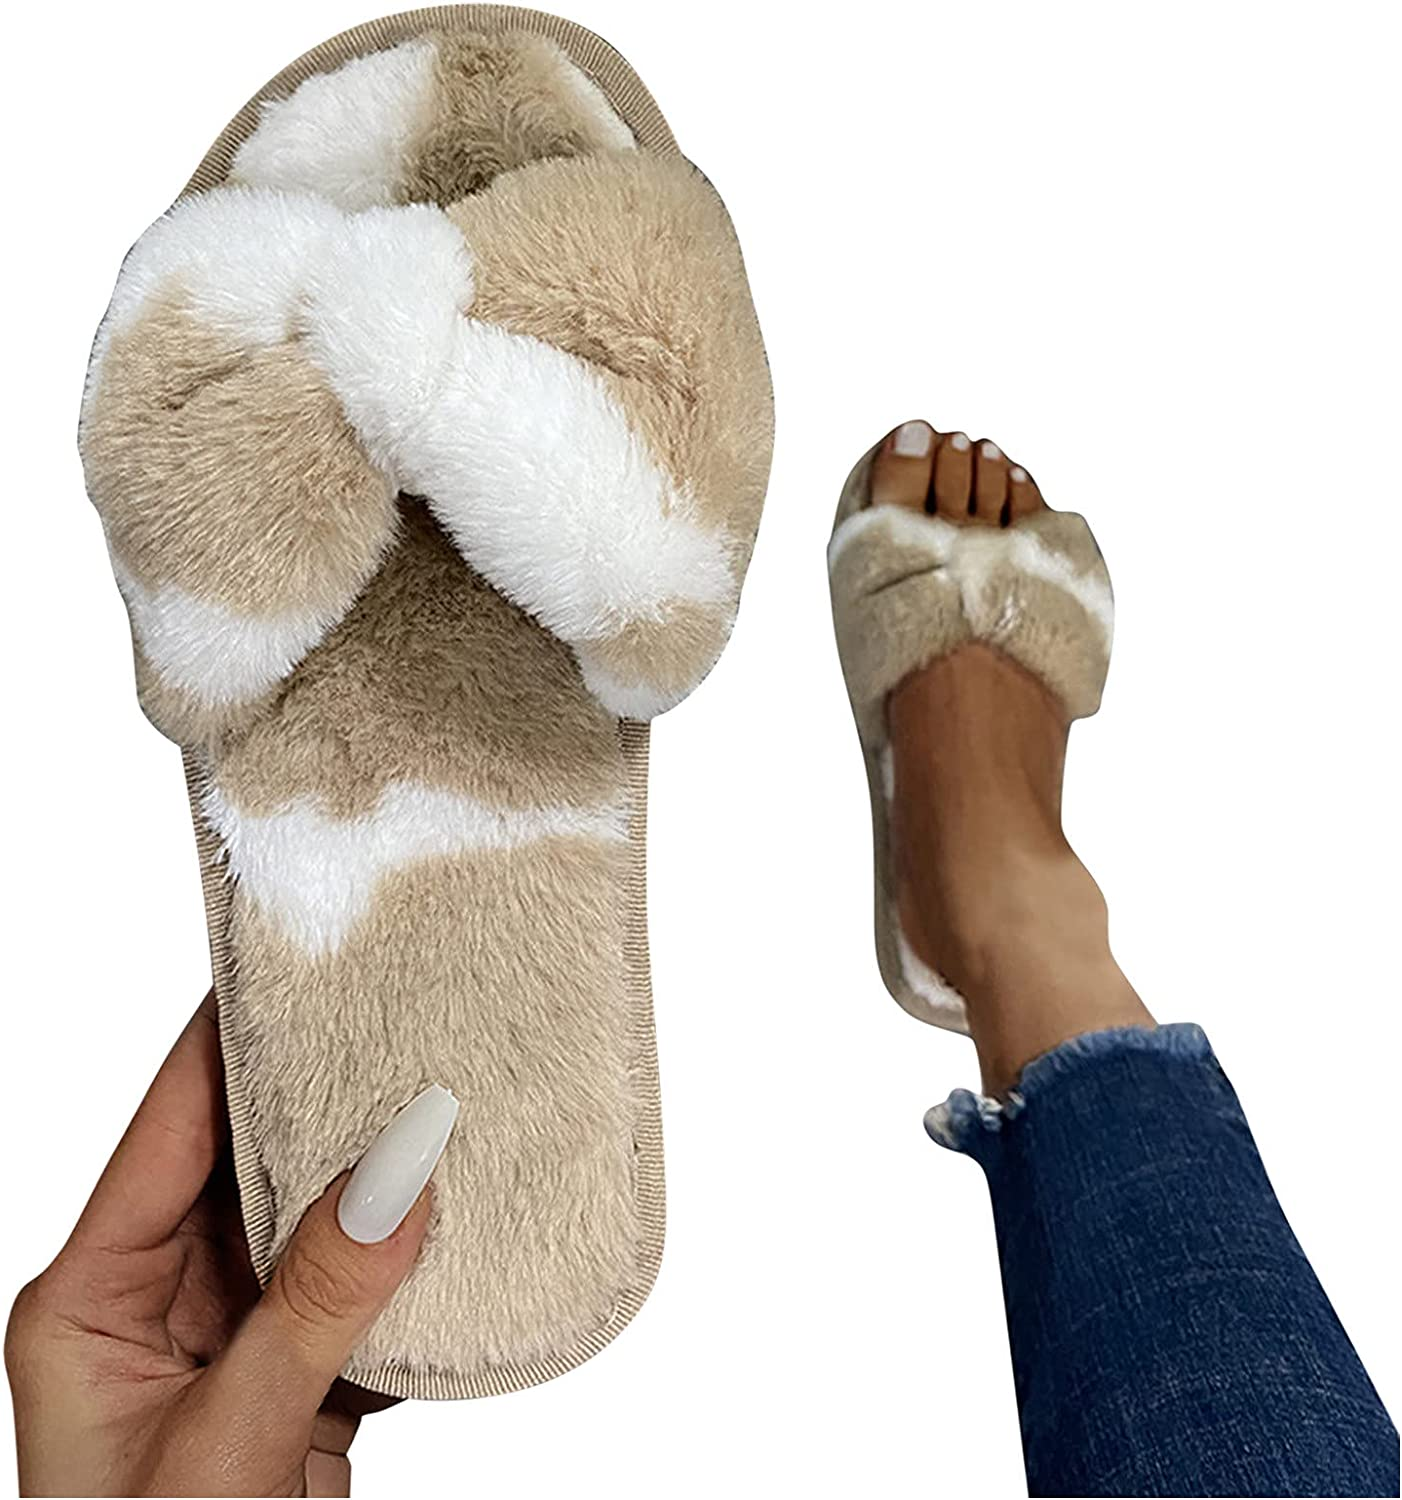 AODONG Slippers for Women,Fur Slippers Slides Open Toe Fuzzy Fur Slippers House Shoes Fluffy House Slides for Outdoor Indoor